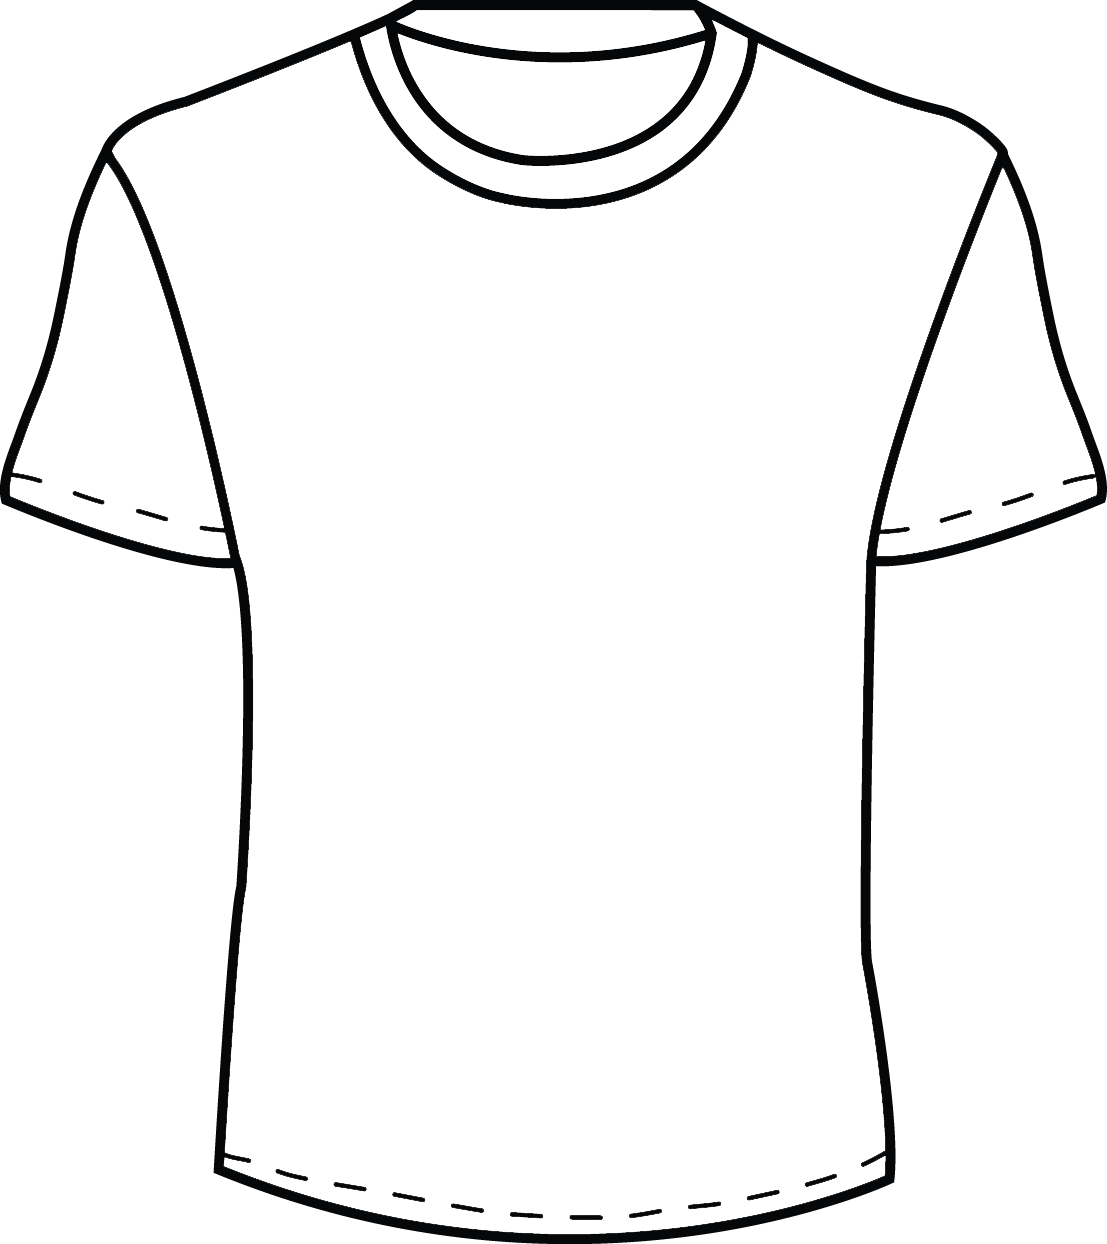 coloring pages shirt - photo#30